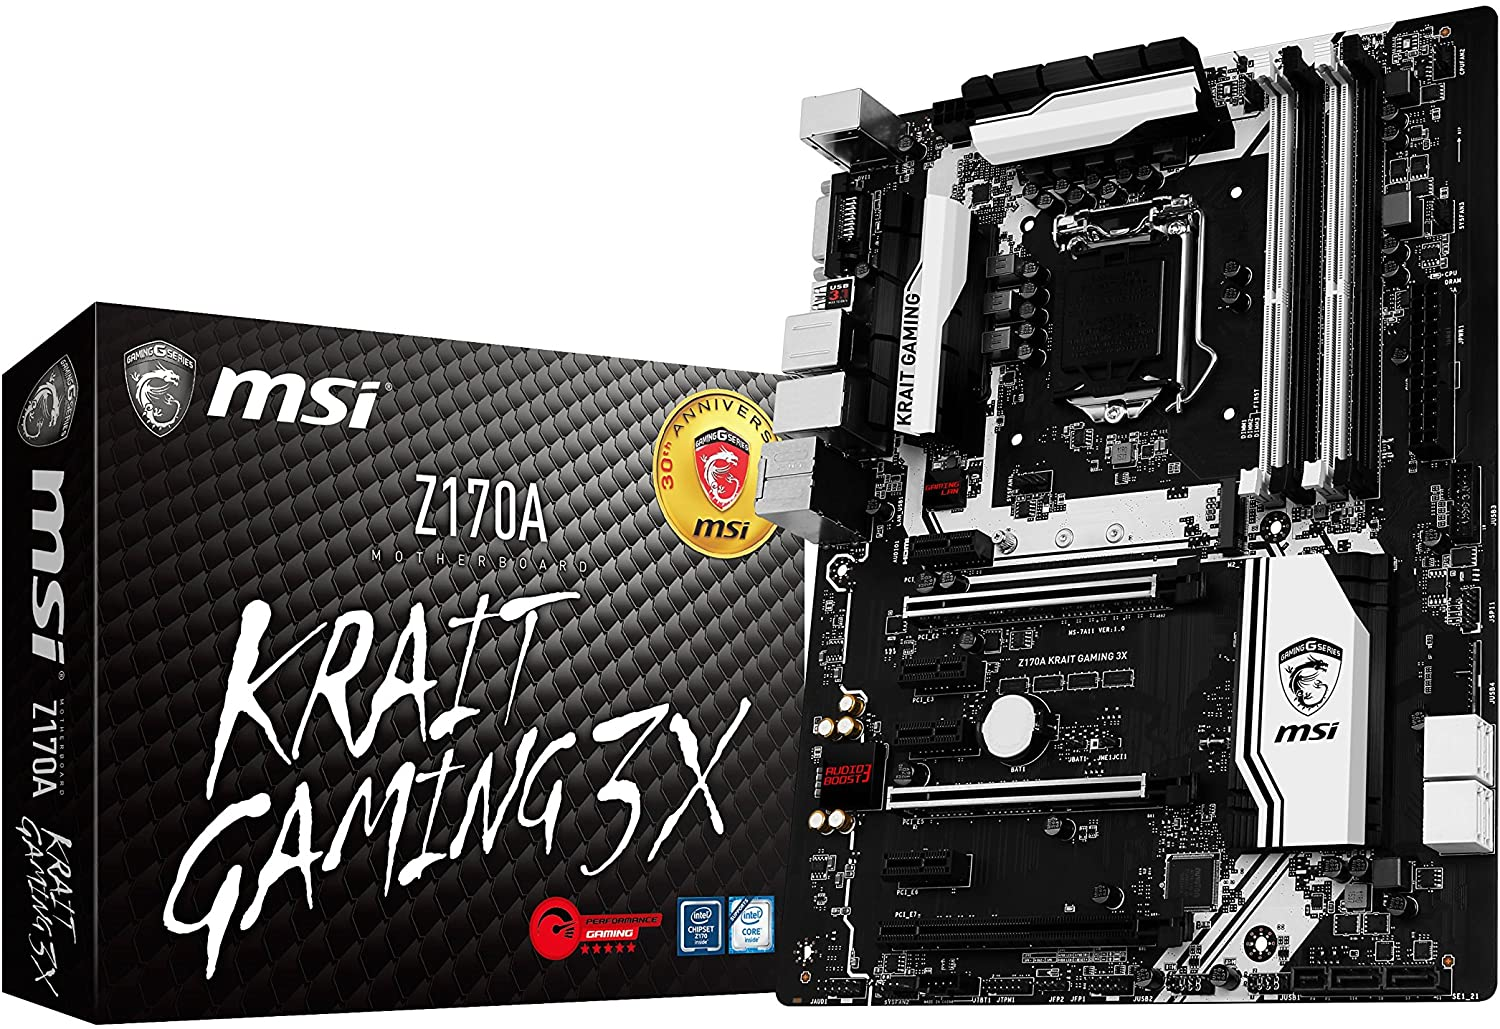 MSI Performance Gaming Intel Z170ALGA 1151 DDR4 USB 3.1 ATX Motherboard (Z170A Krait Gaming 3X)